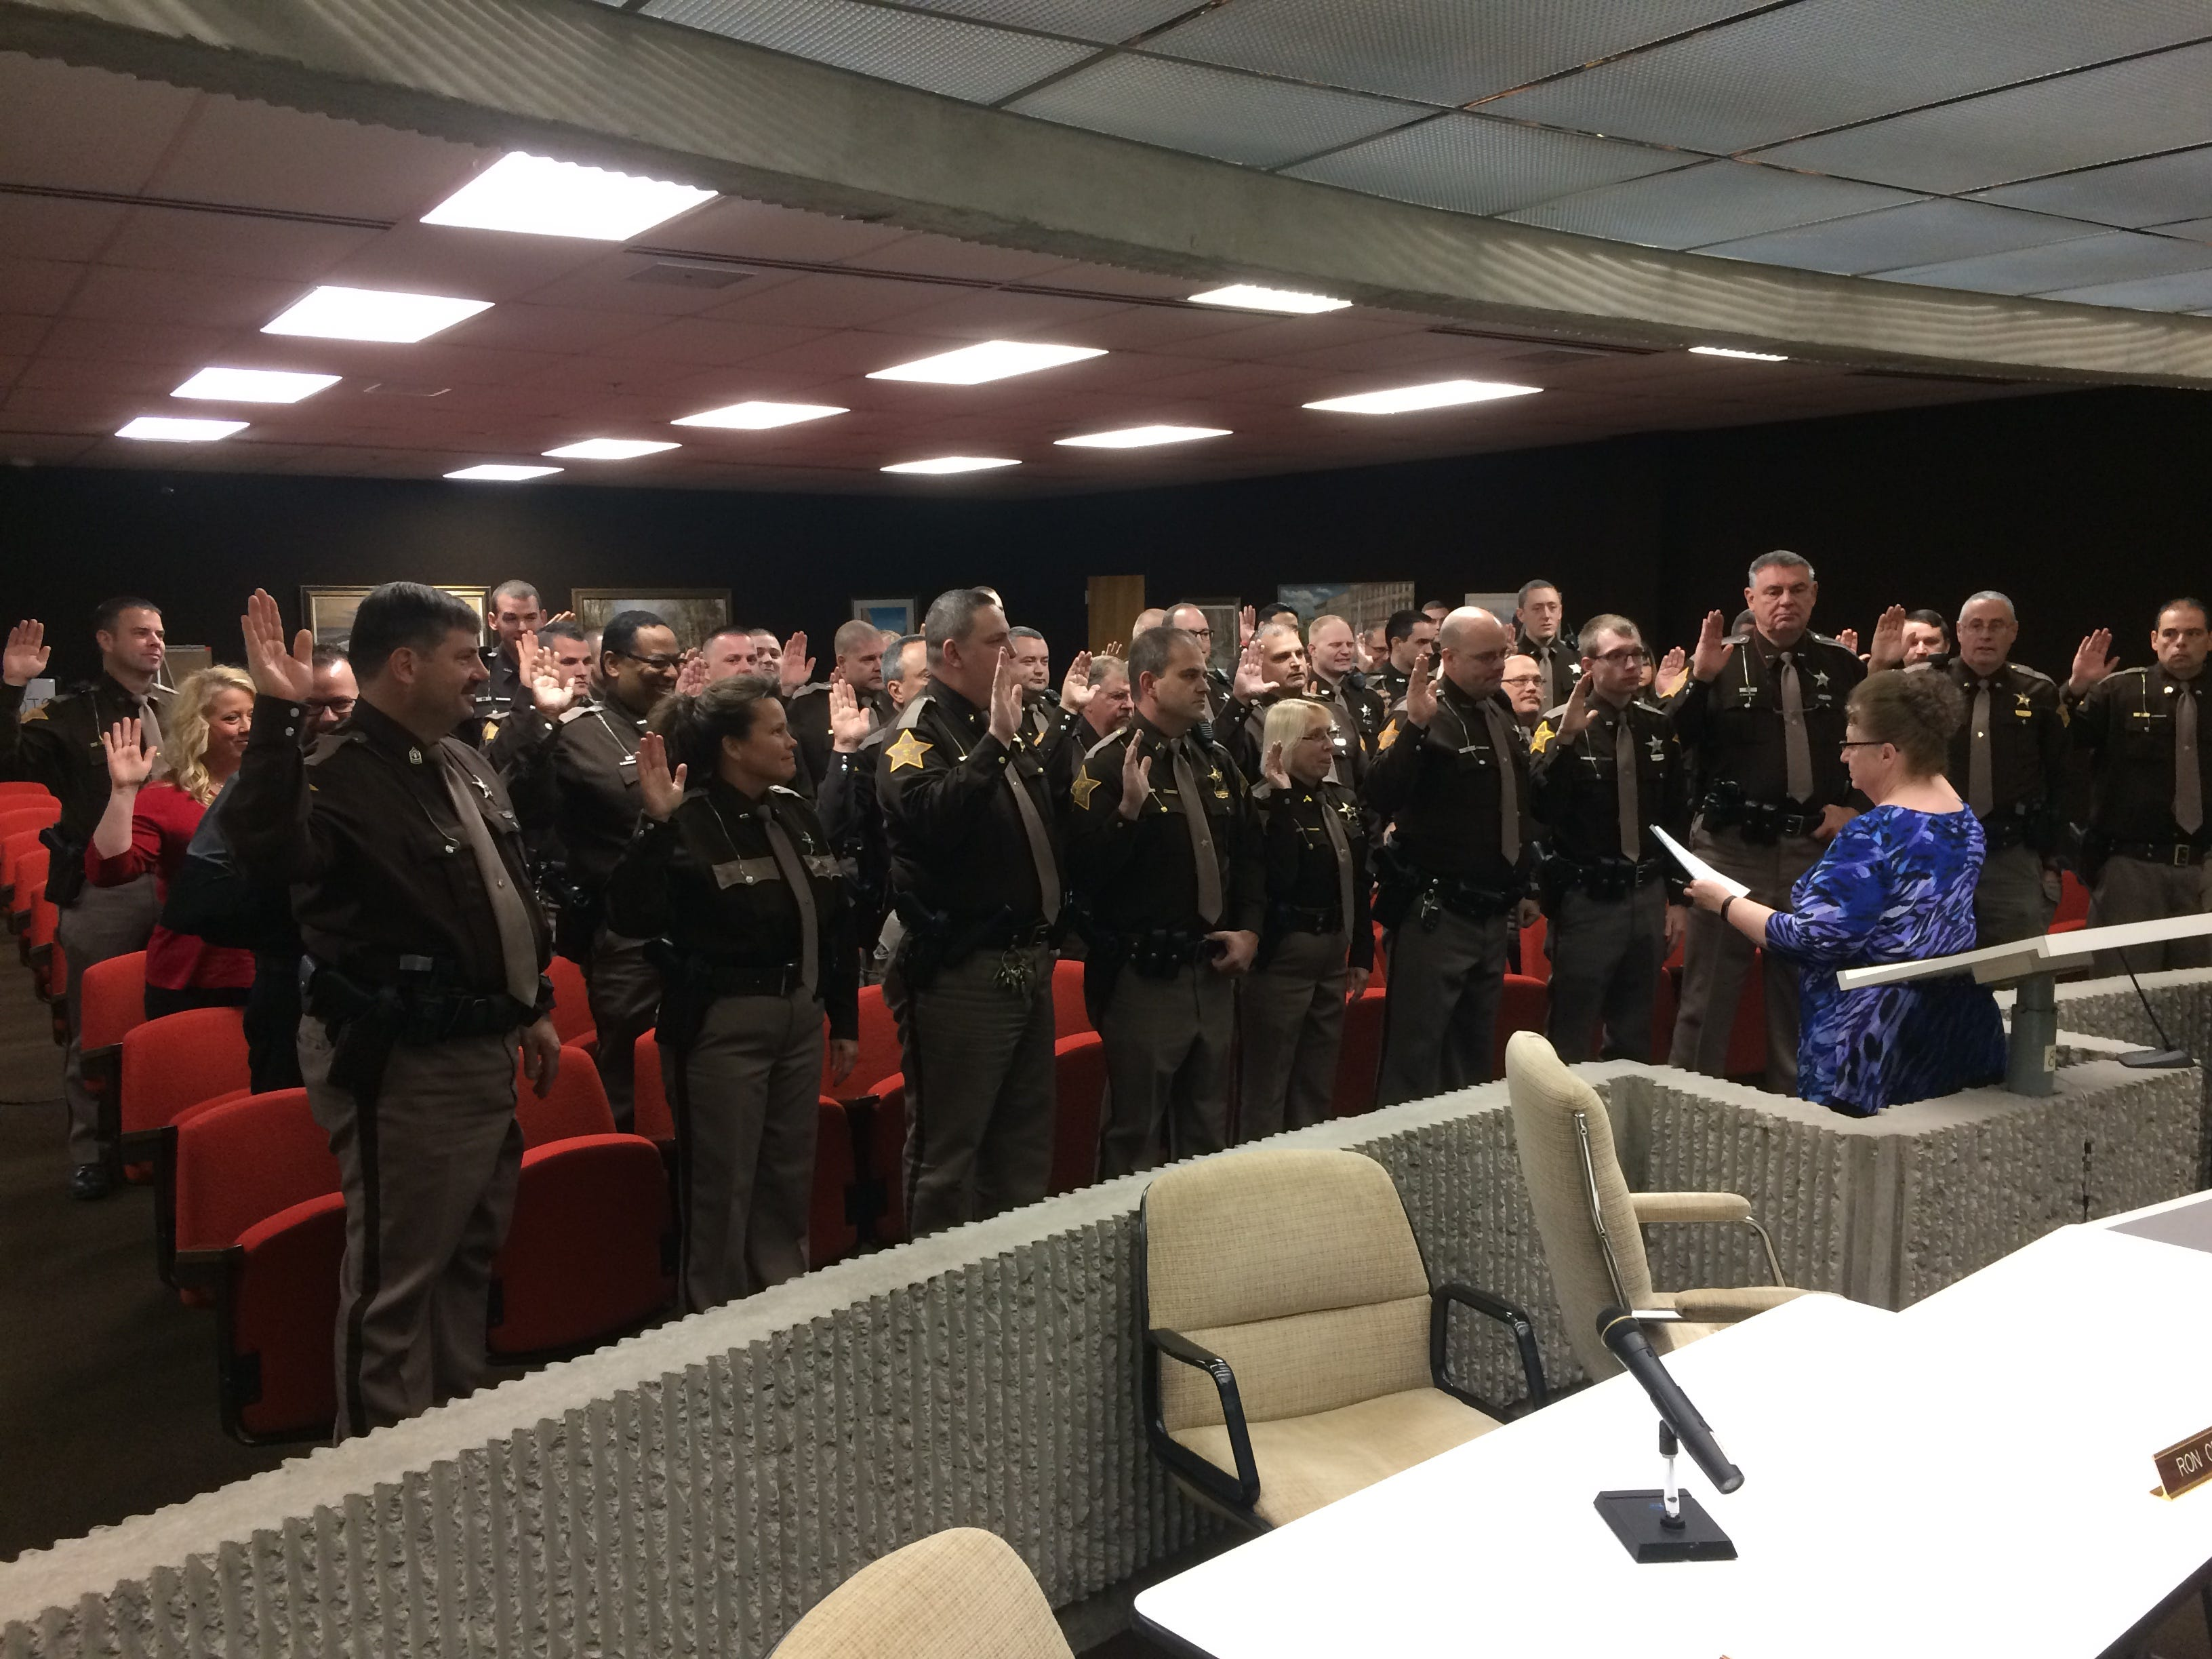 Wayne County Clerk Debra Berry swears in Wayne County Sheriff's Office personnel Friday.